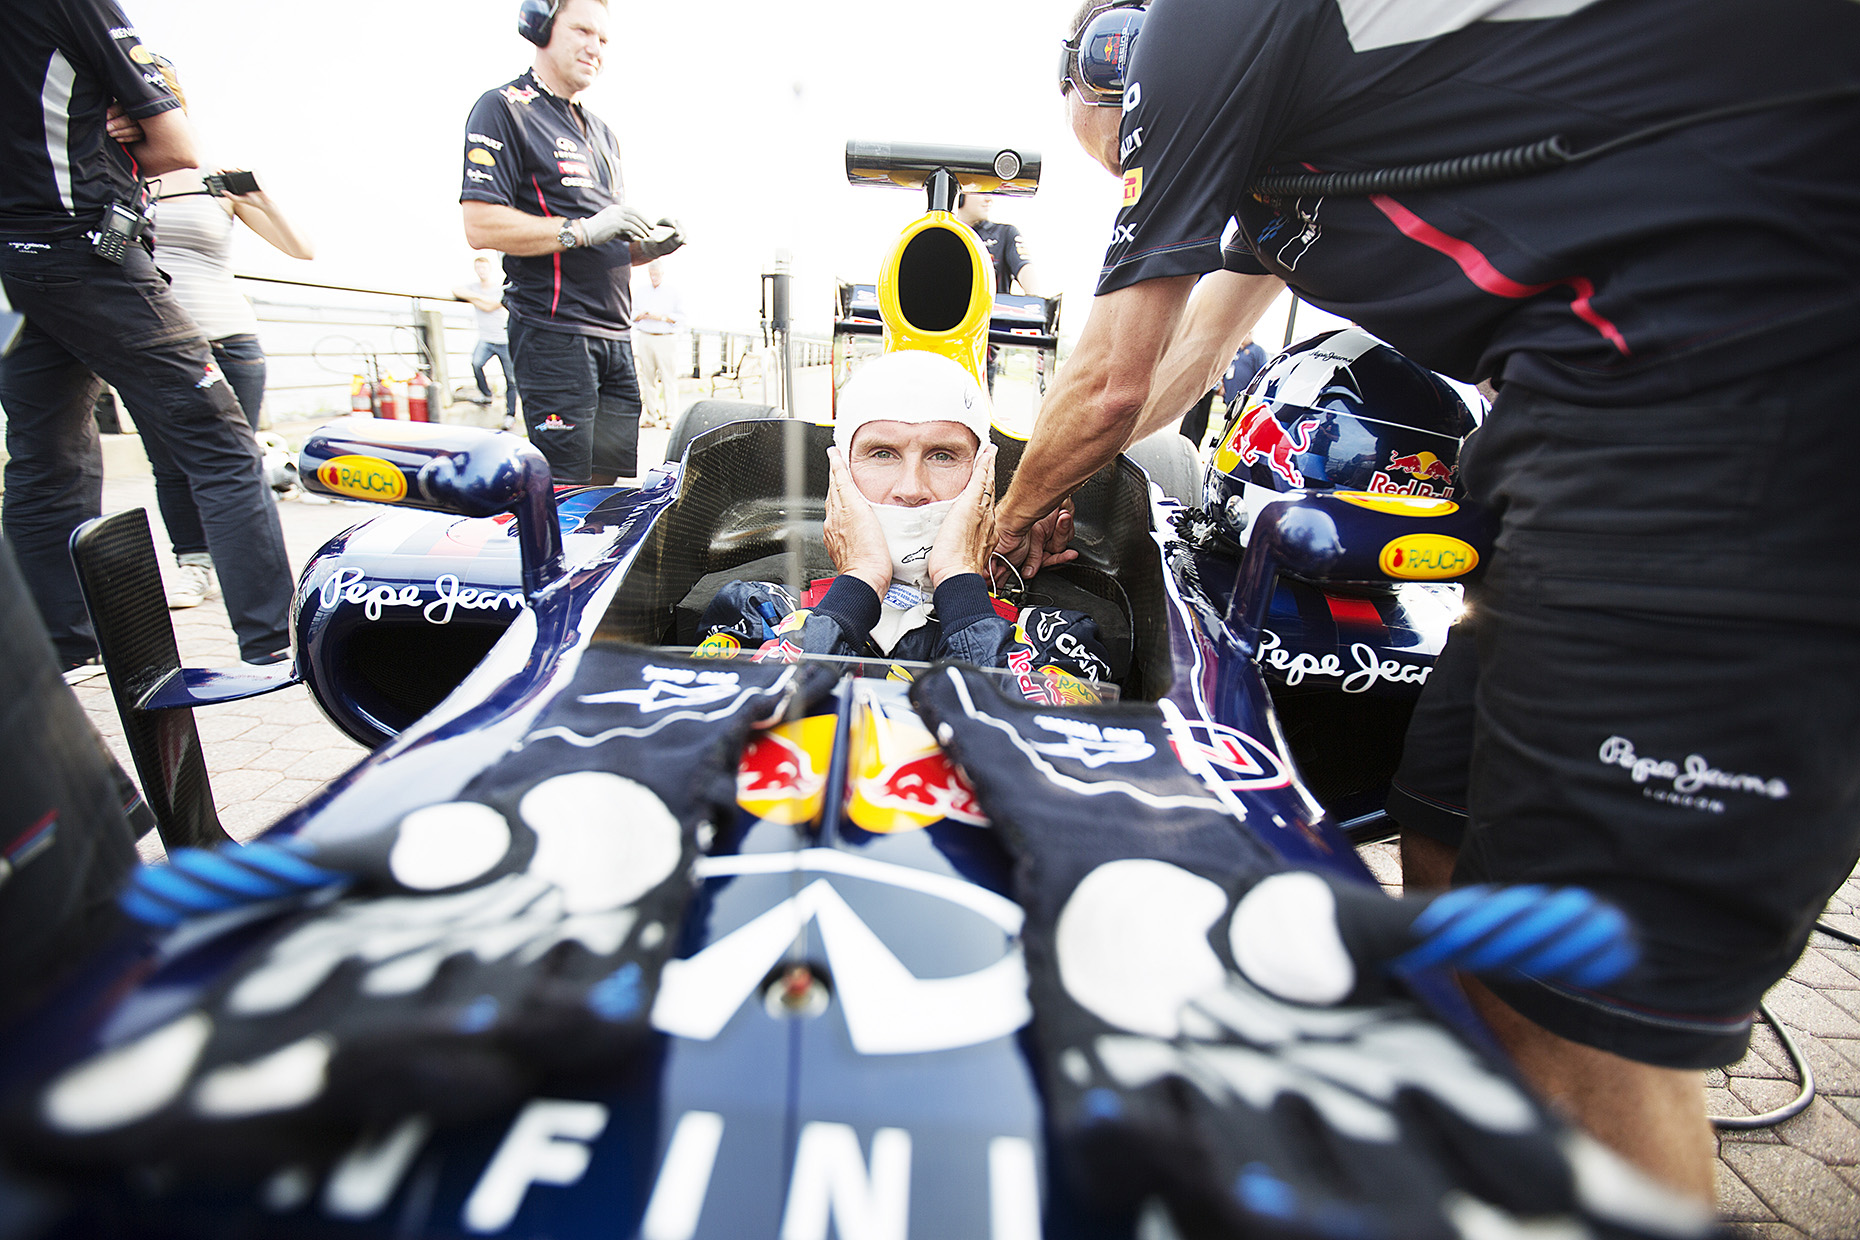 F1 Racing for Red Bull by Boston based commercial portrait photographer Brian Nevins